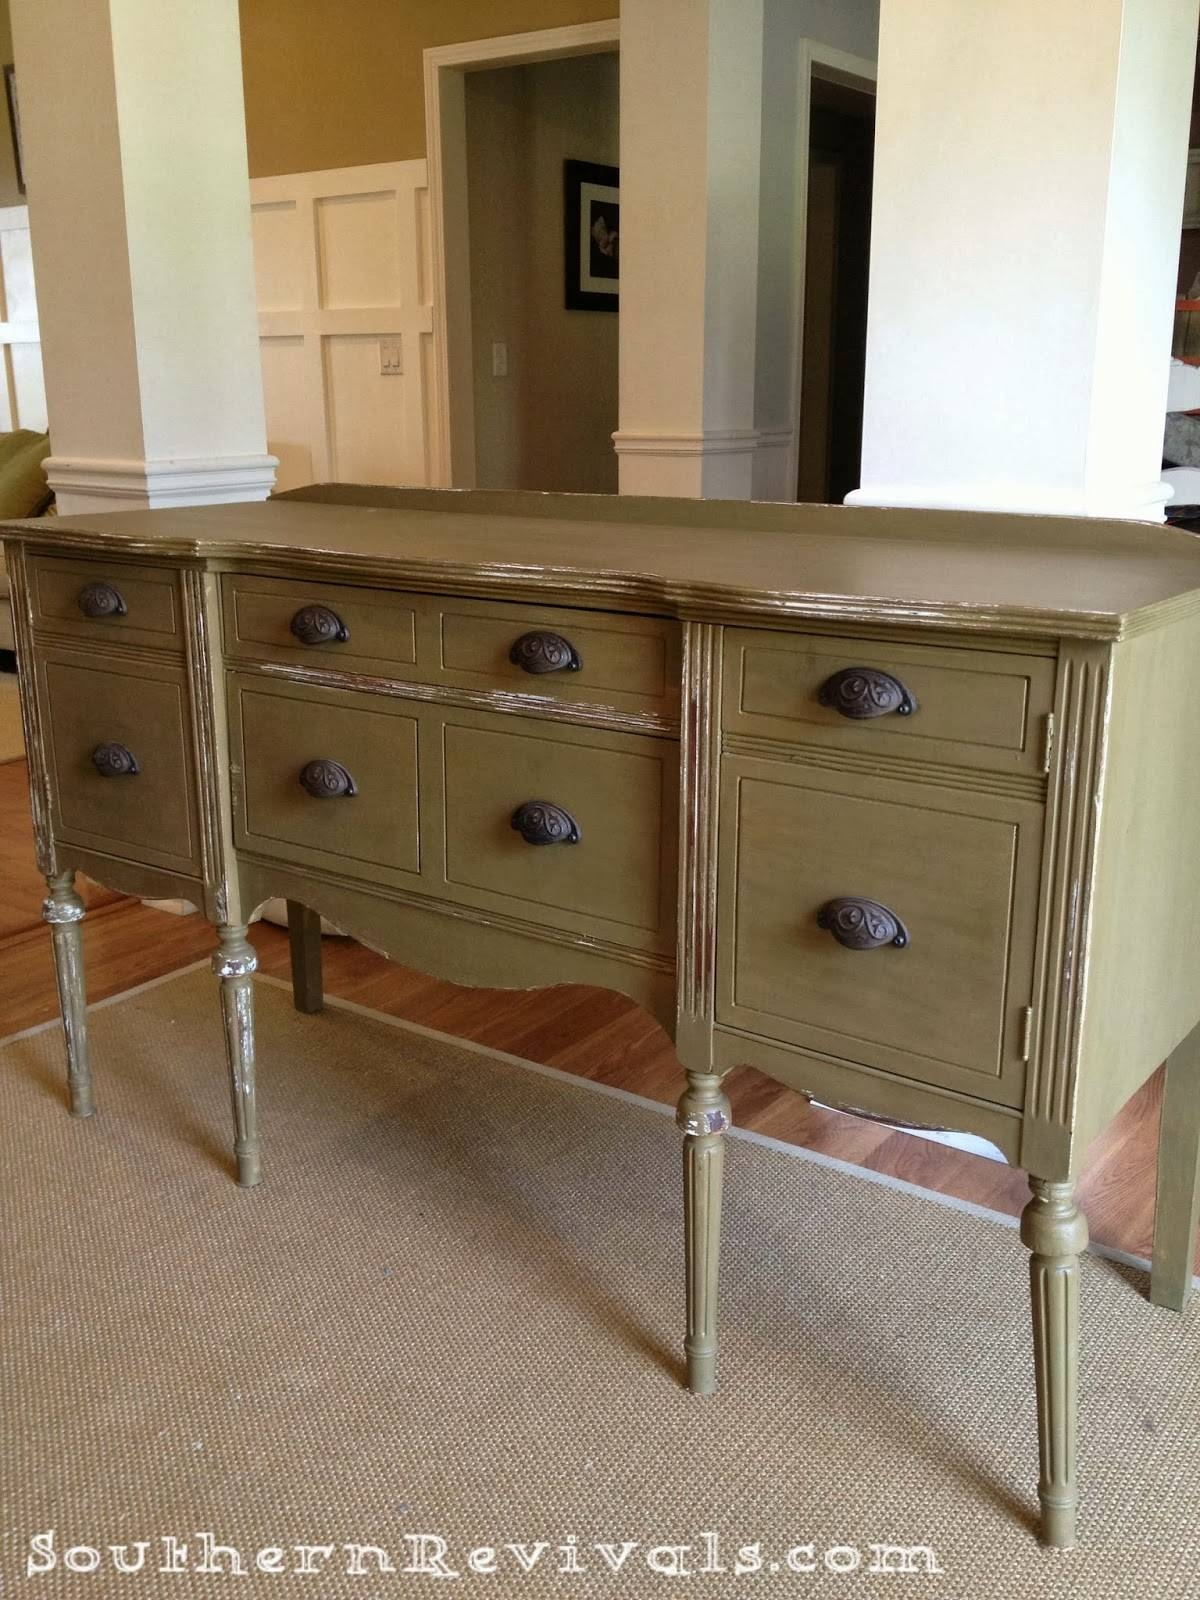 Fresh Vintage Sideboards And Buffets - Bjdgjy for Painted Sideboards And Buffets (Image 5 of 15)